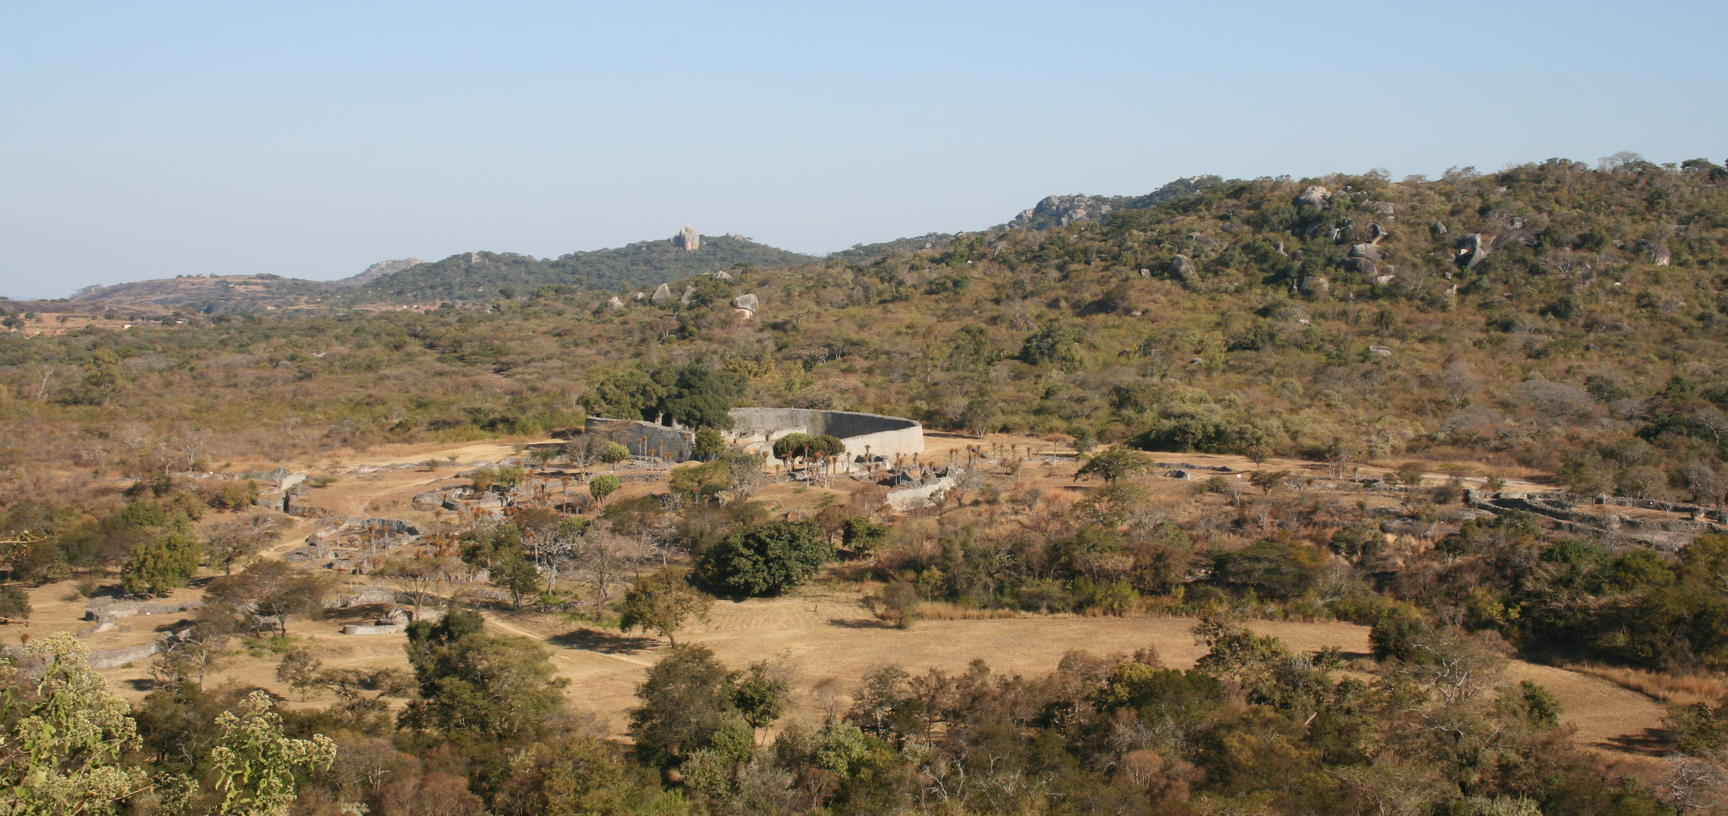 View of Great Zimbabwe site